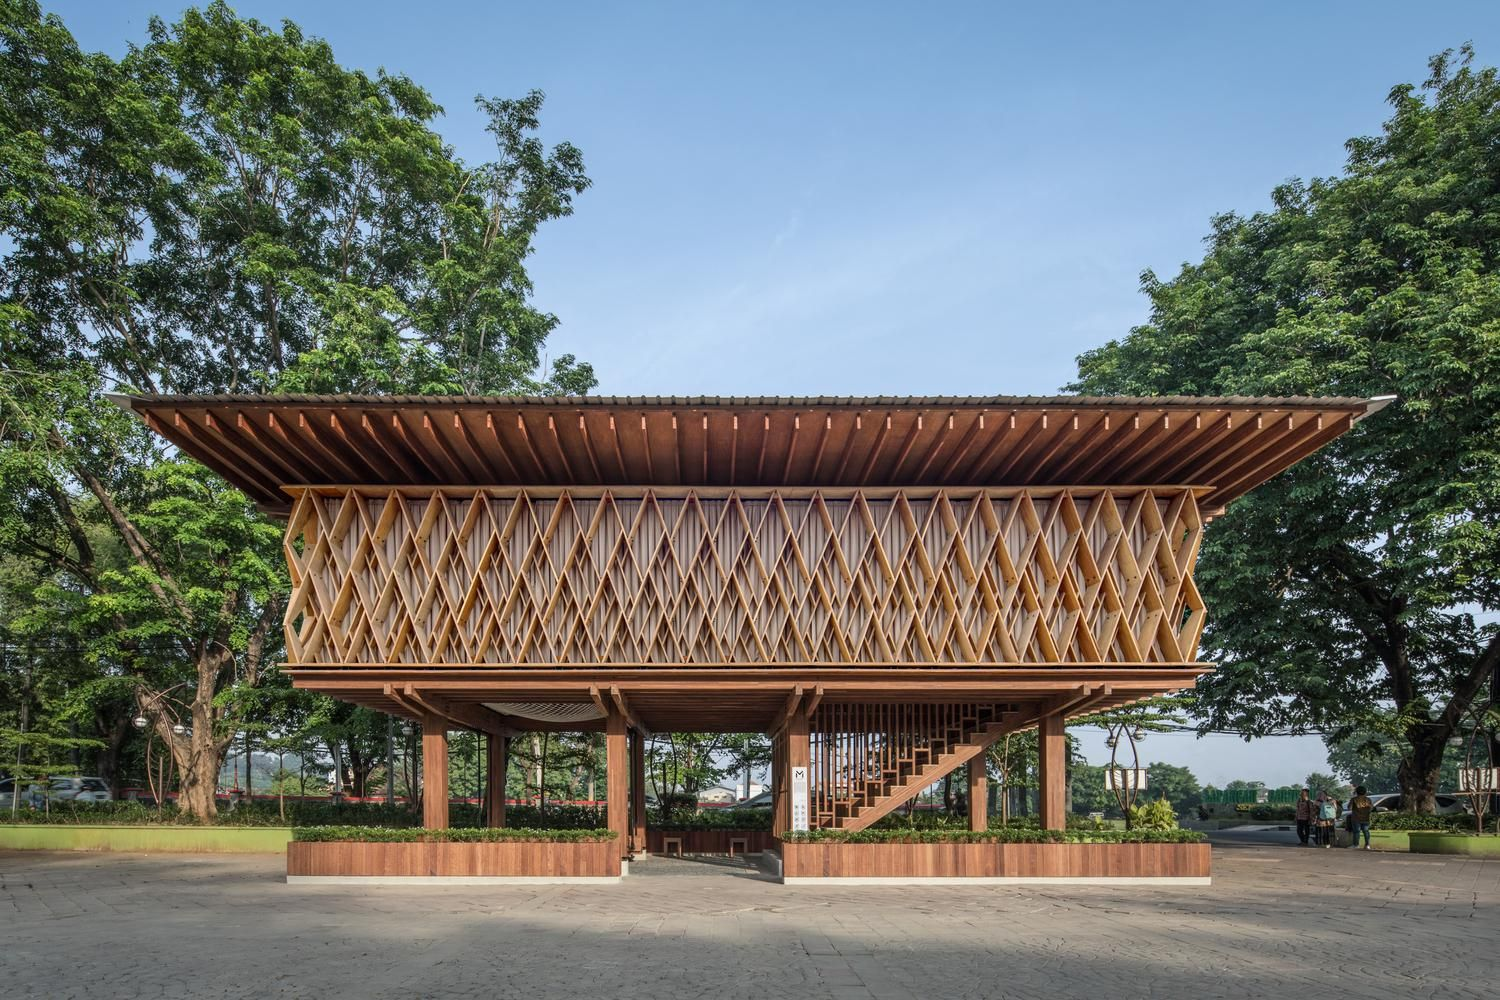 Microlibrary Warak Kayu / SHAU Indonesia [1500 x 1000] in